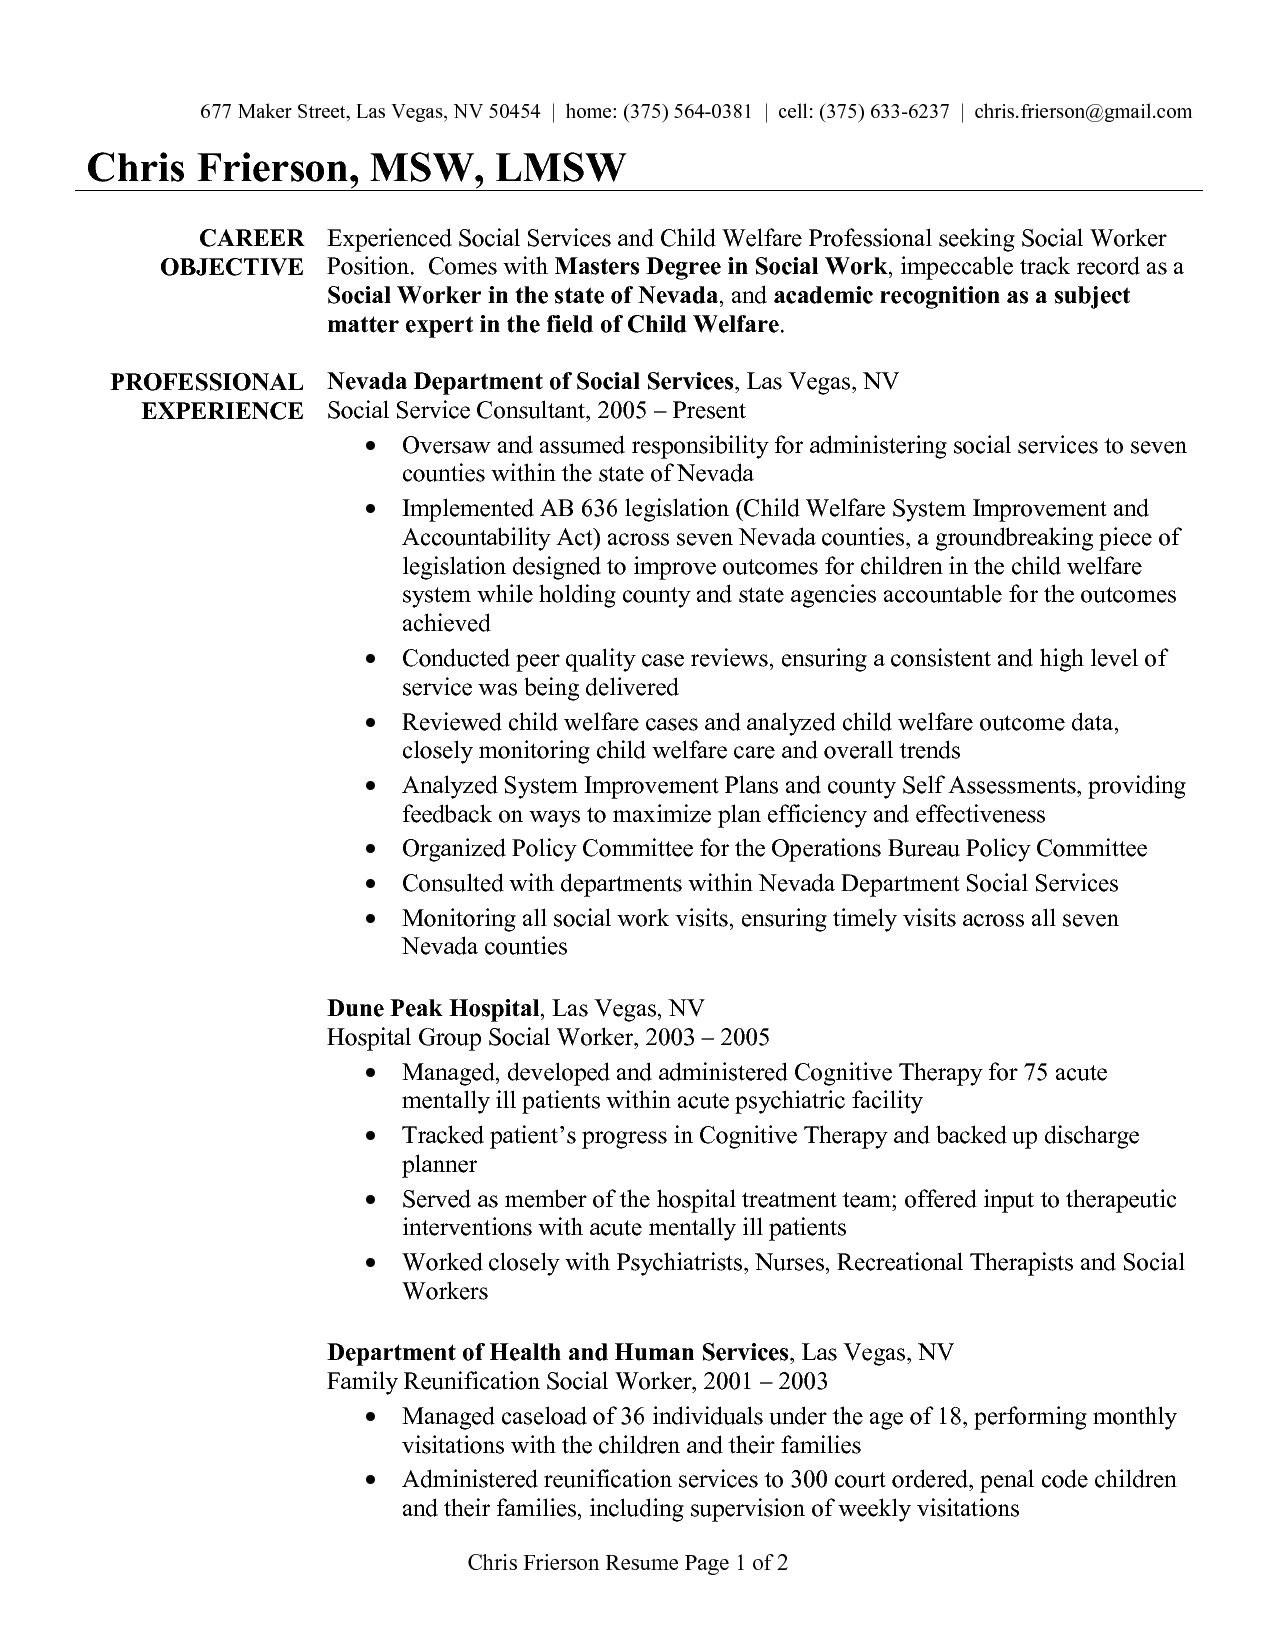 social work resume examples social worker resume sample - Social Work Resumes And Cover Letters